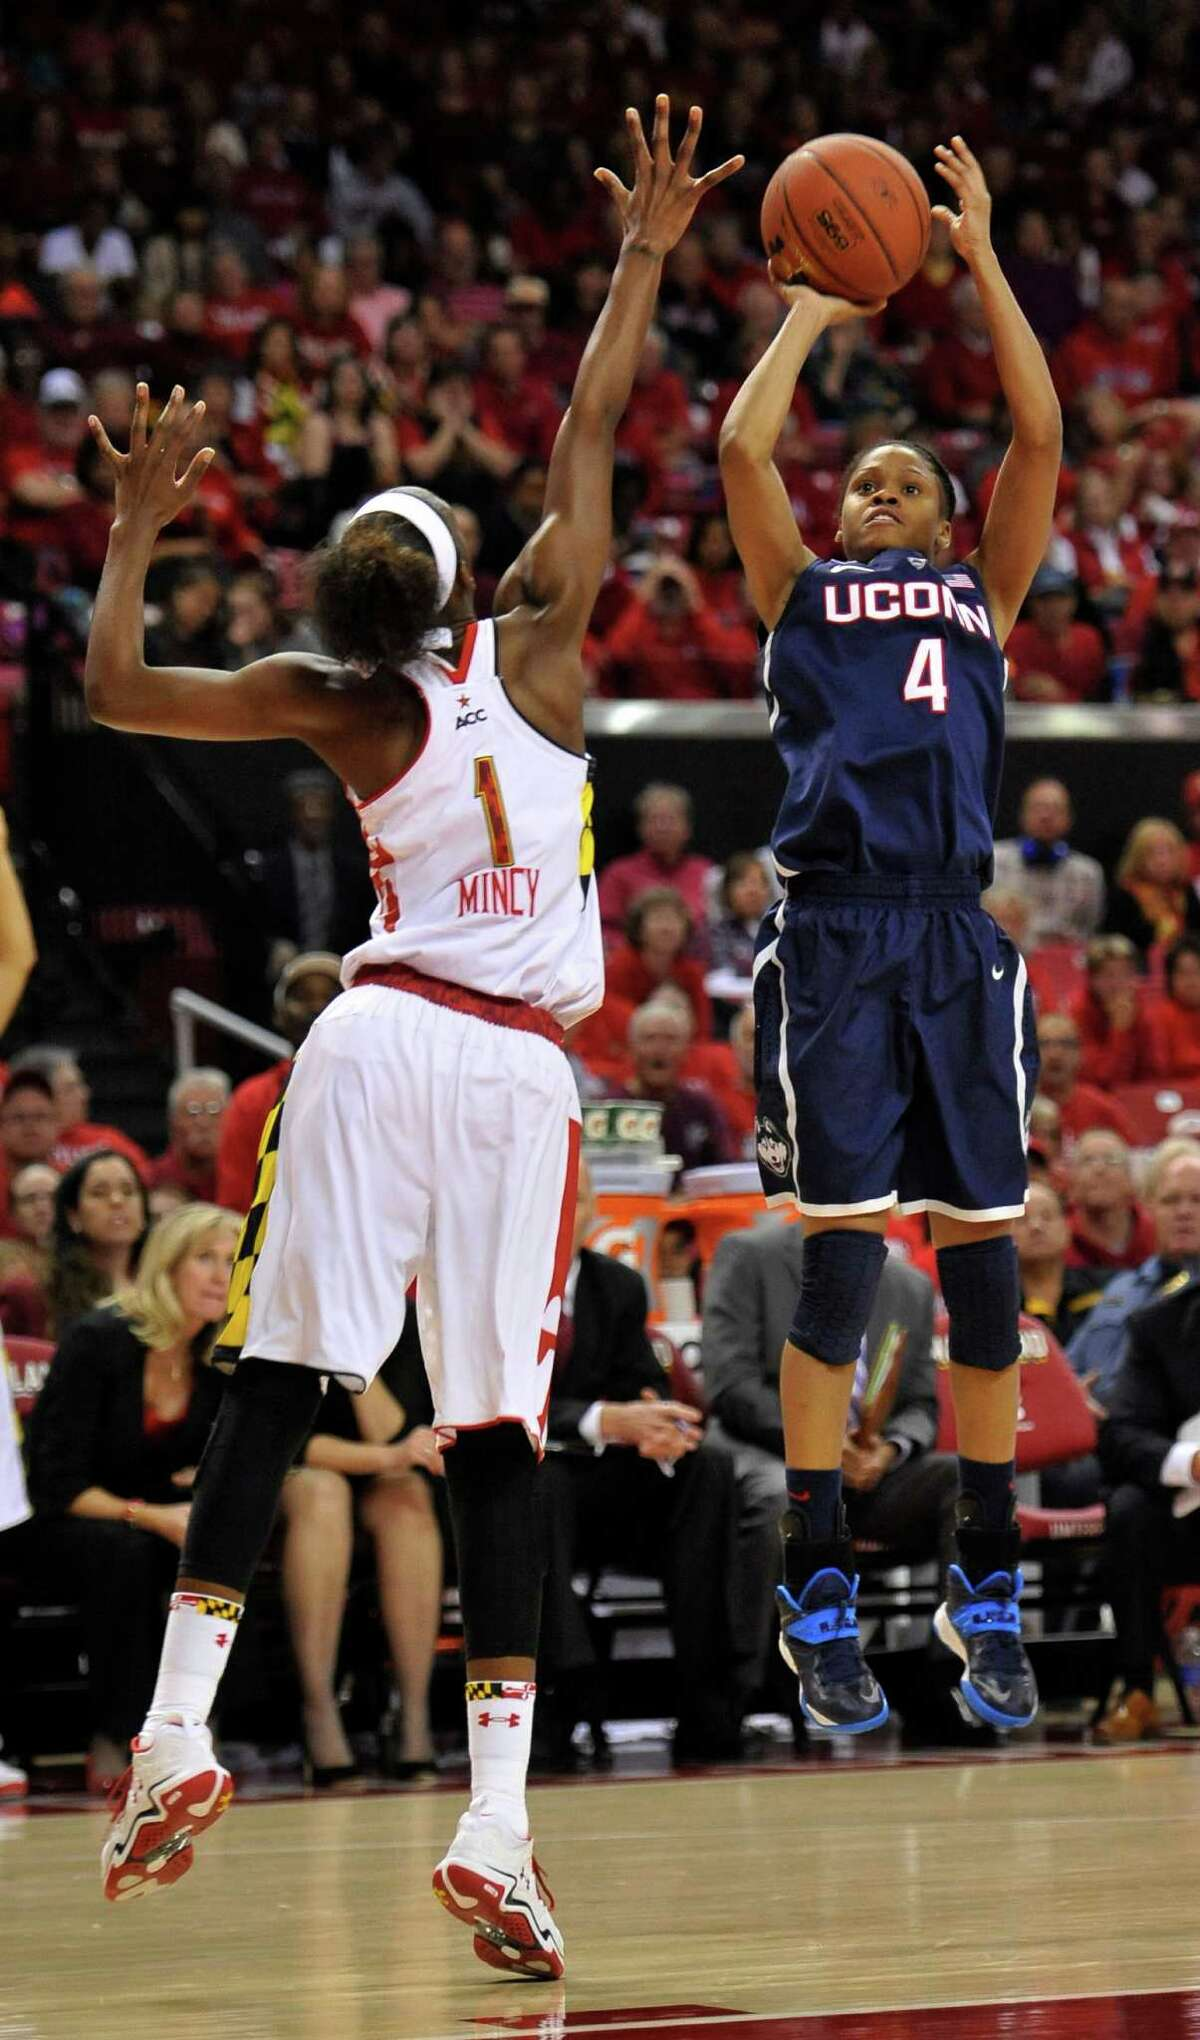 Connecticut's Moriah Jefferson shoots as Maryland's Laurin Mincy tries to block in the first half of an NCAA basketball game Friday, Nov. 15, 2013 in College Park, Md.(AP Photo/Gail Burton)